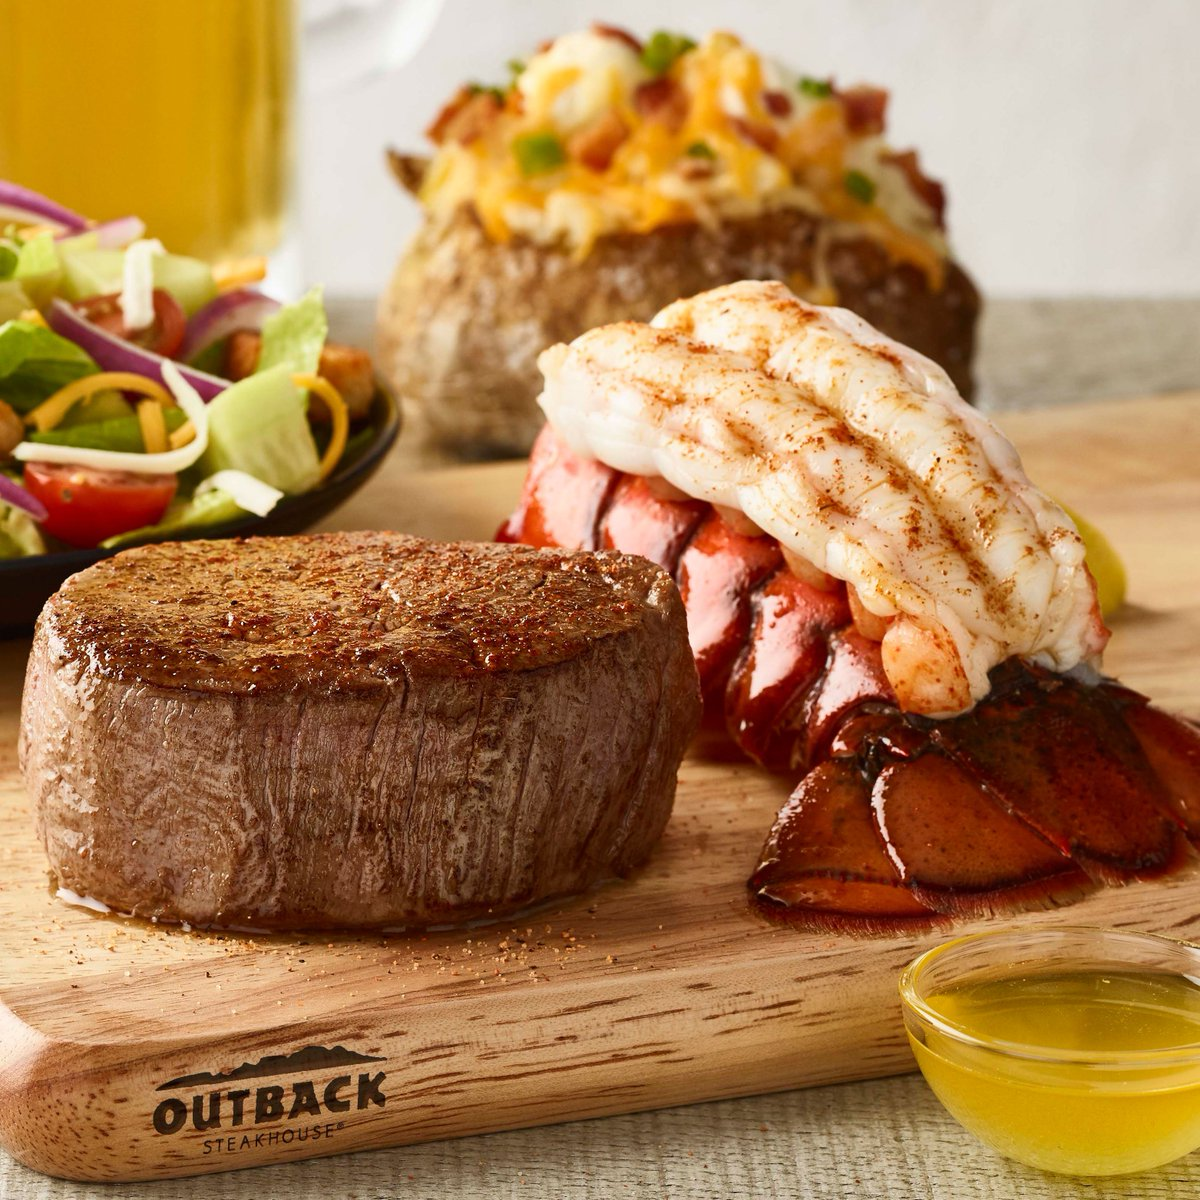 outback steakhouse outback twitter